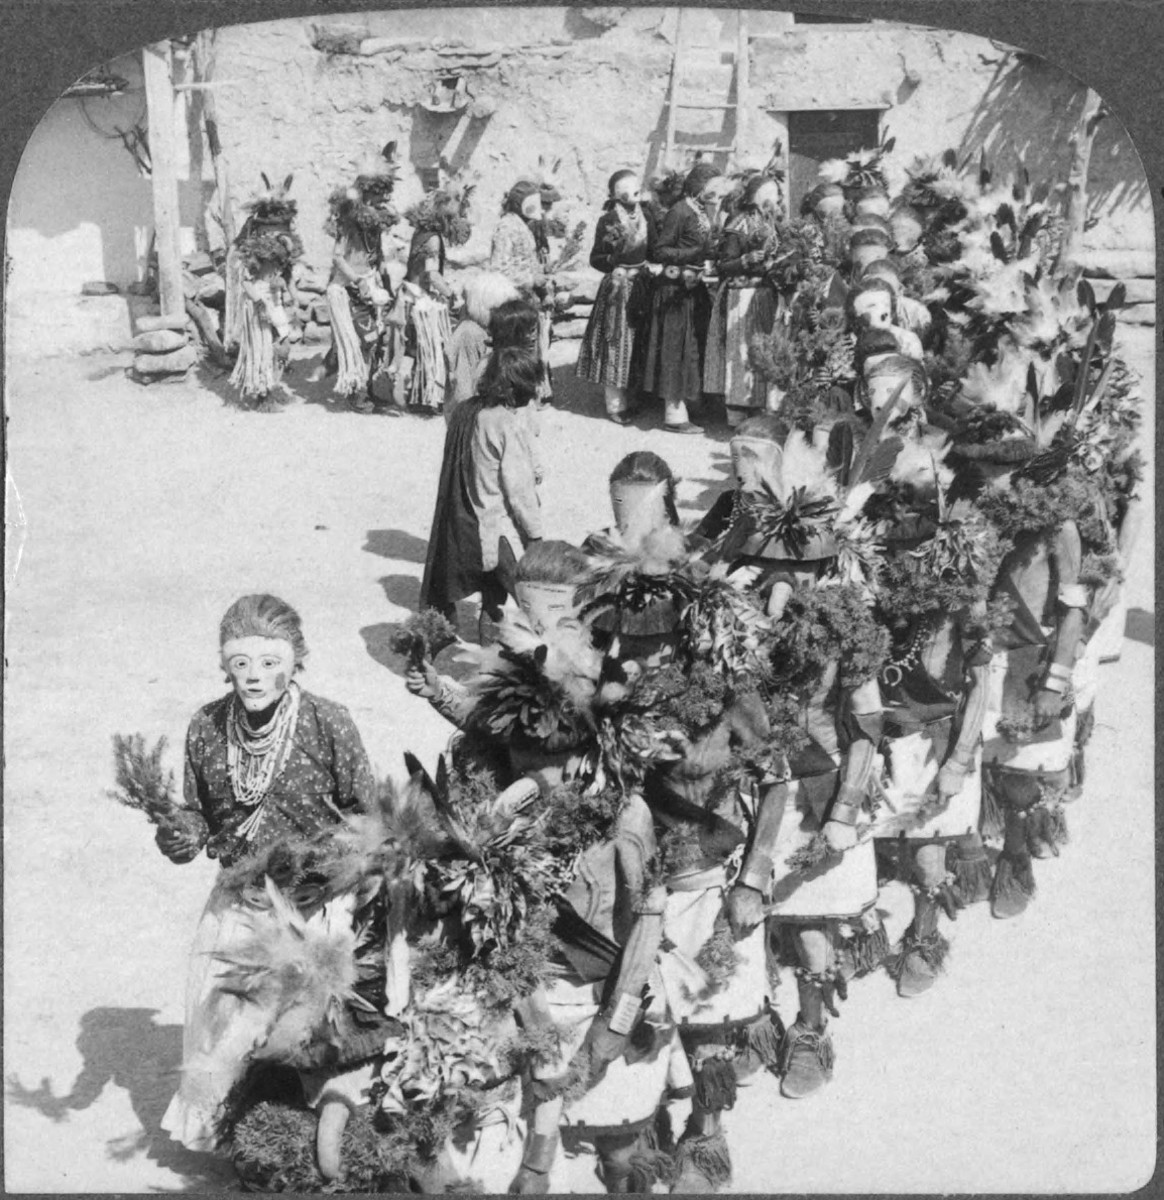 Kachina dancers of the Hopi pueblo of Shongopavi, Arizona, USA taken sometime between 1870 and 1900. Dancers of the Powamu Ceremony.